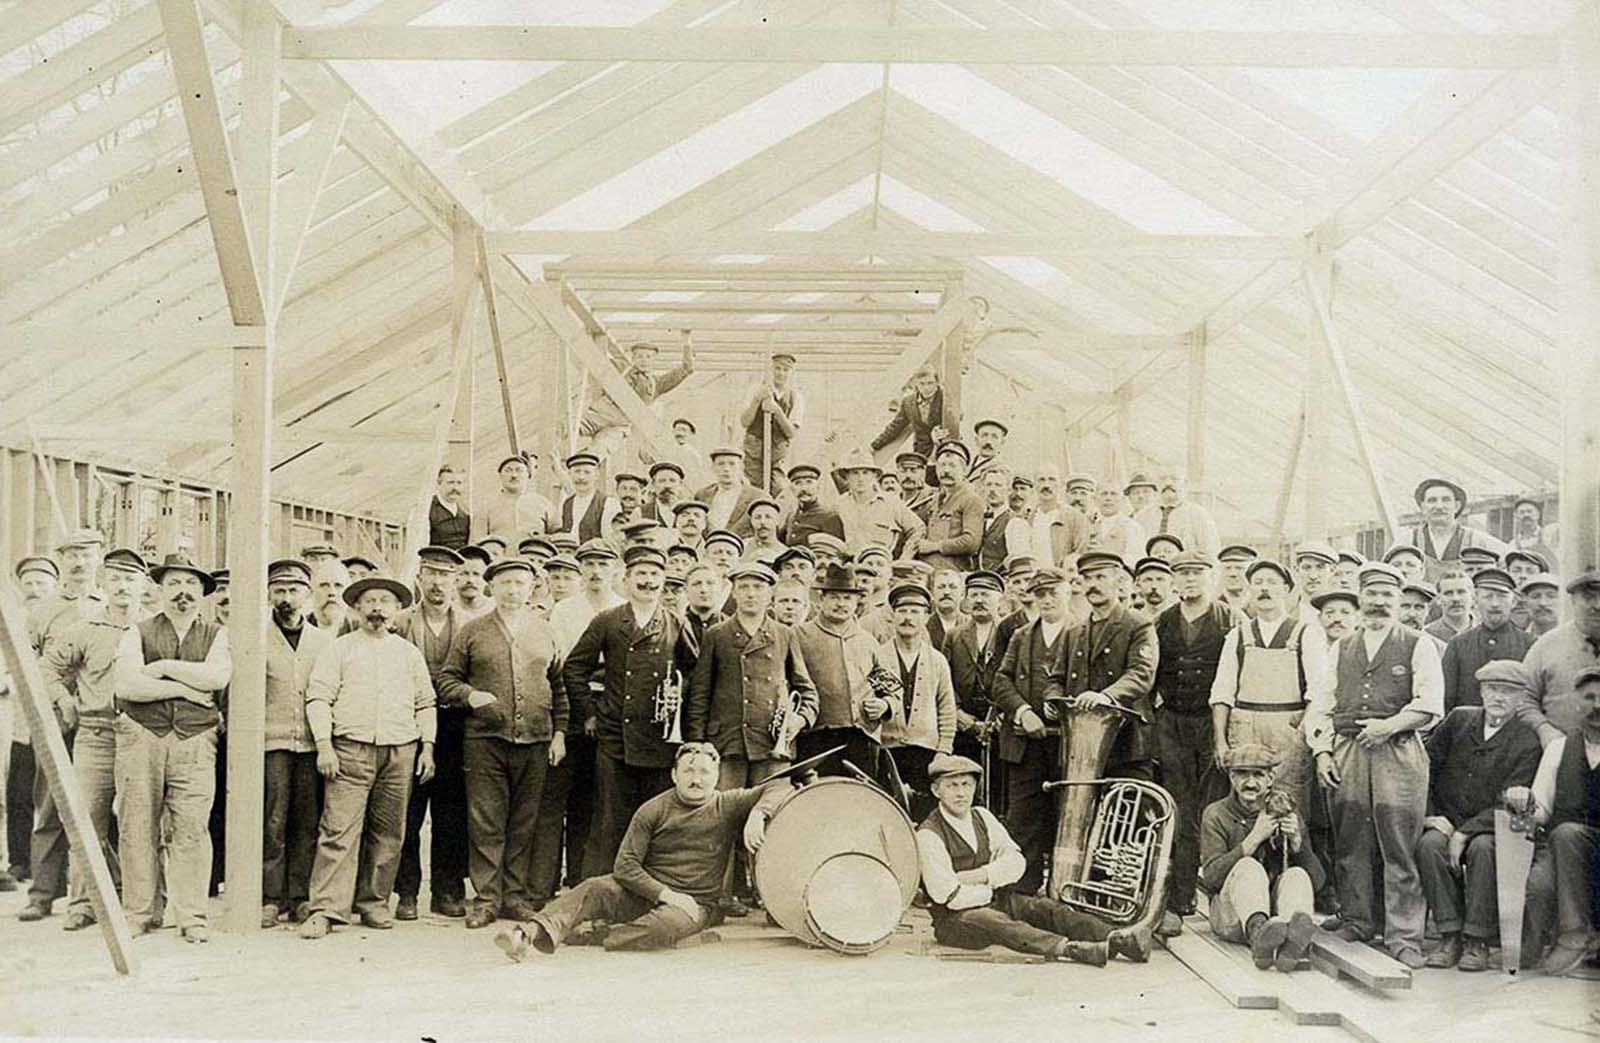 Internees and members of the German Imperial Band pose in a partially-constructed building.